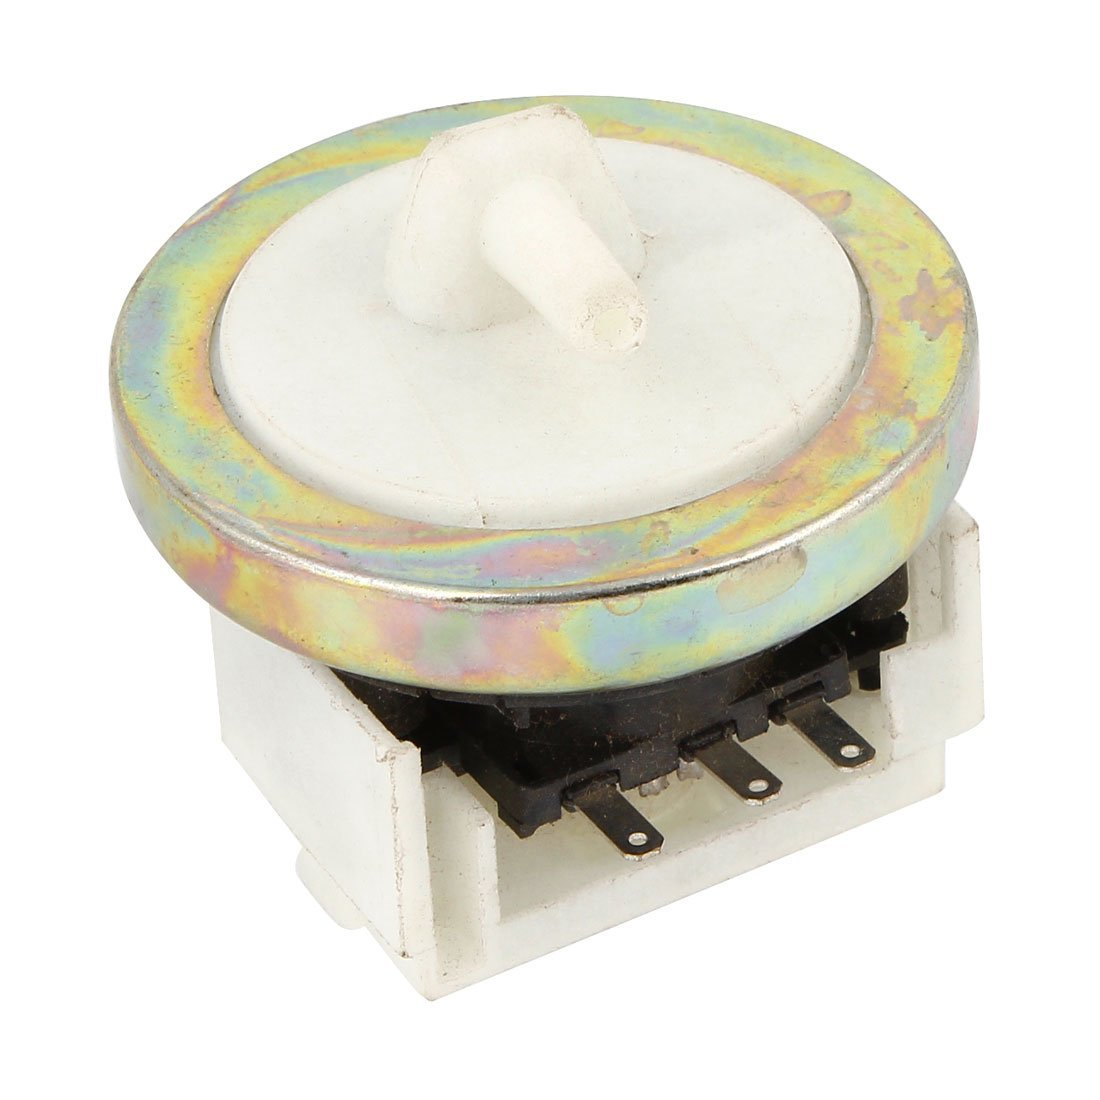 DC15V 10A Water Level Switch LG Washing Machine Spare Part DealMux